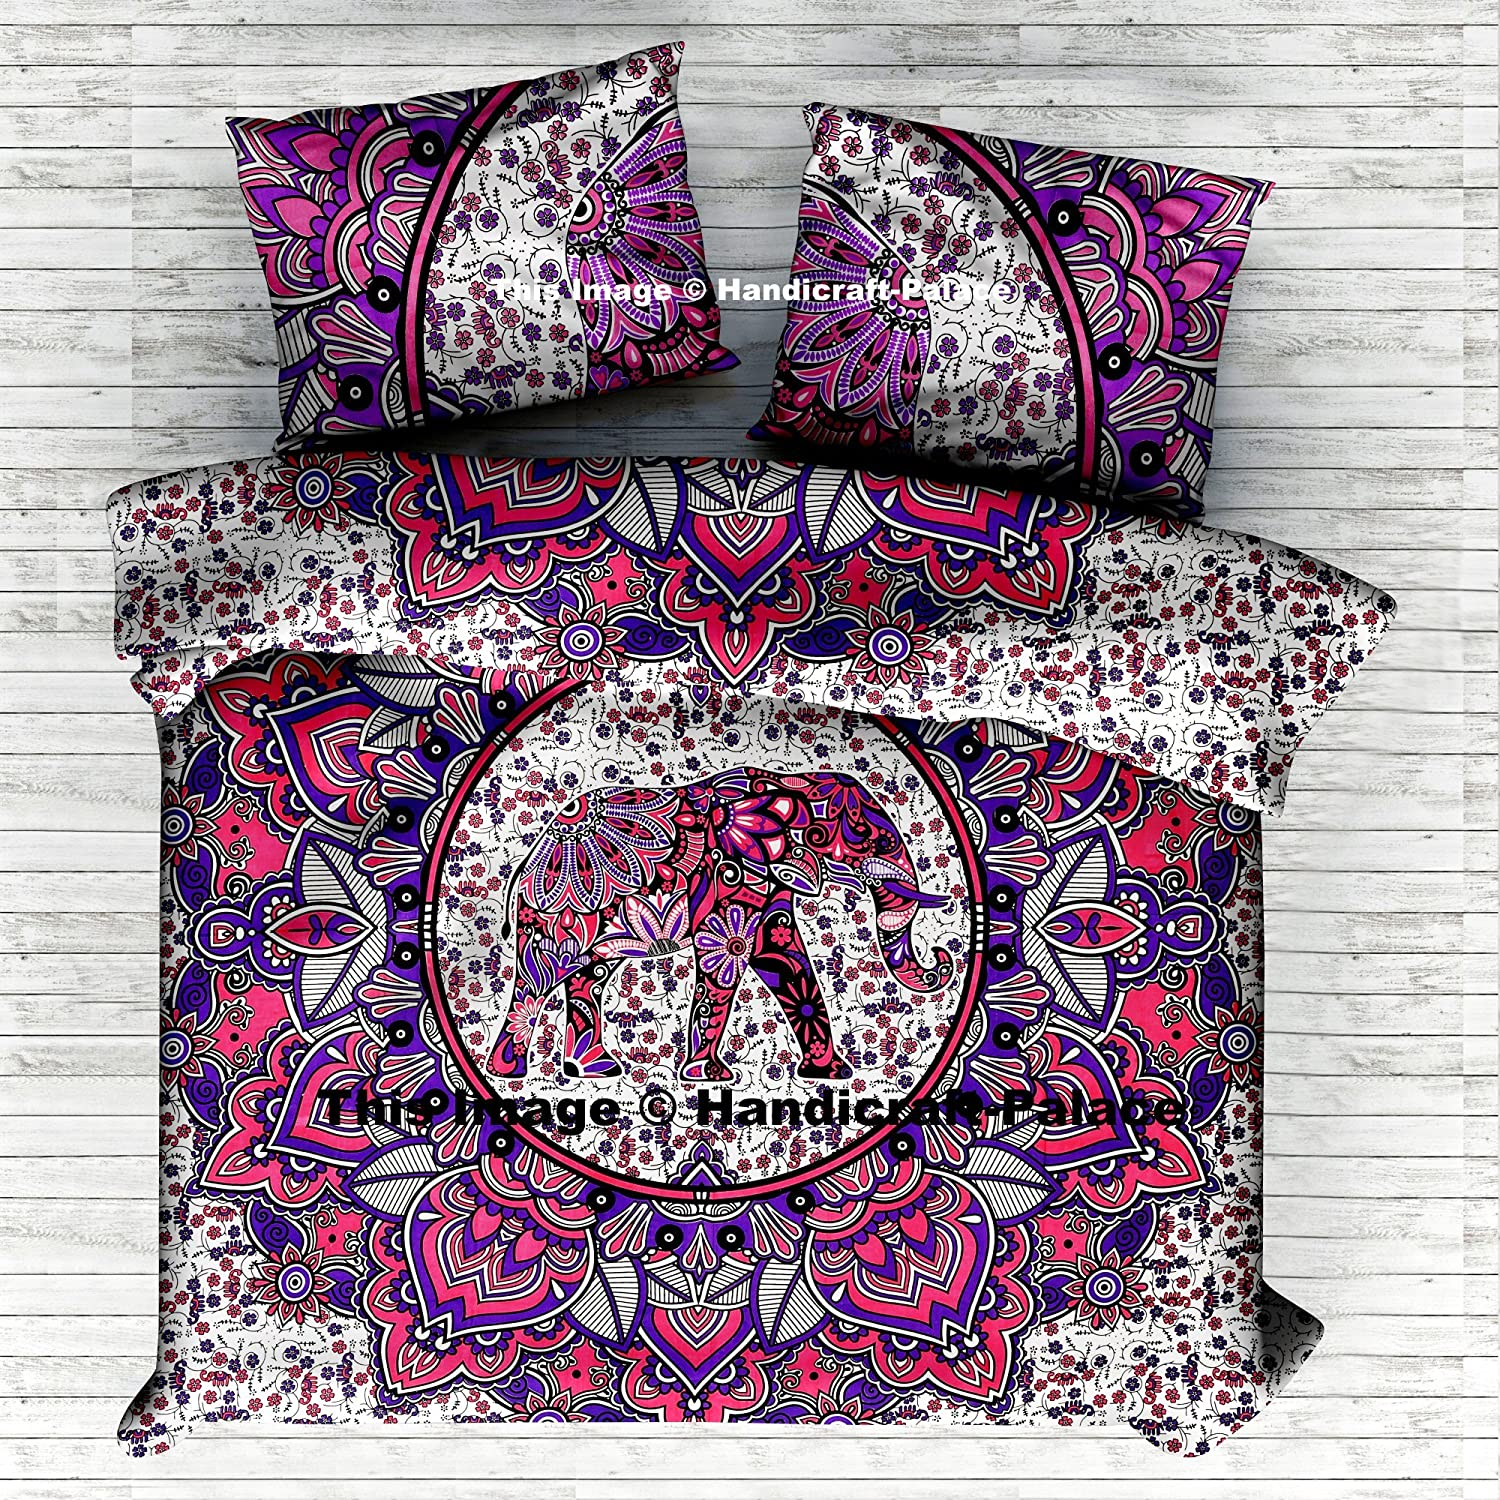 Indian Handmade Elephant Mandala Queen Size Duvet Cover Cotton Reversible Doona Cover Quilt Blanket Hippie Set Pillow case 95